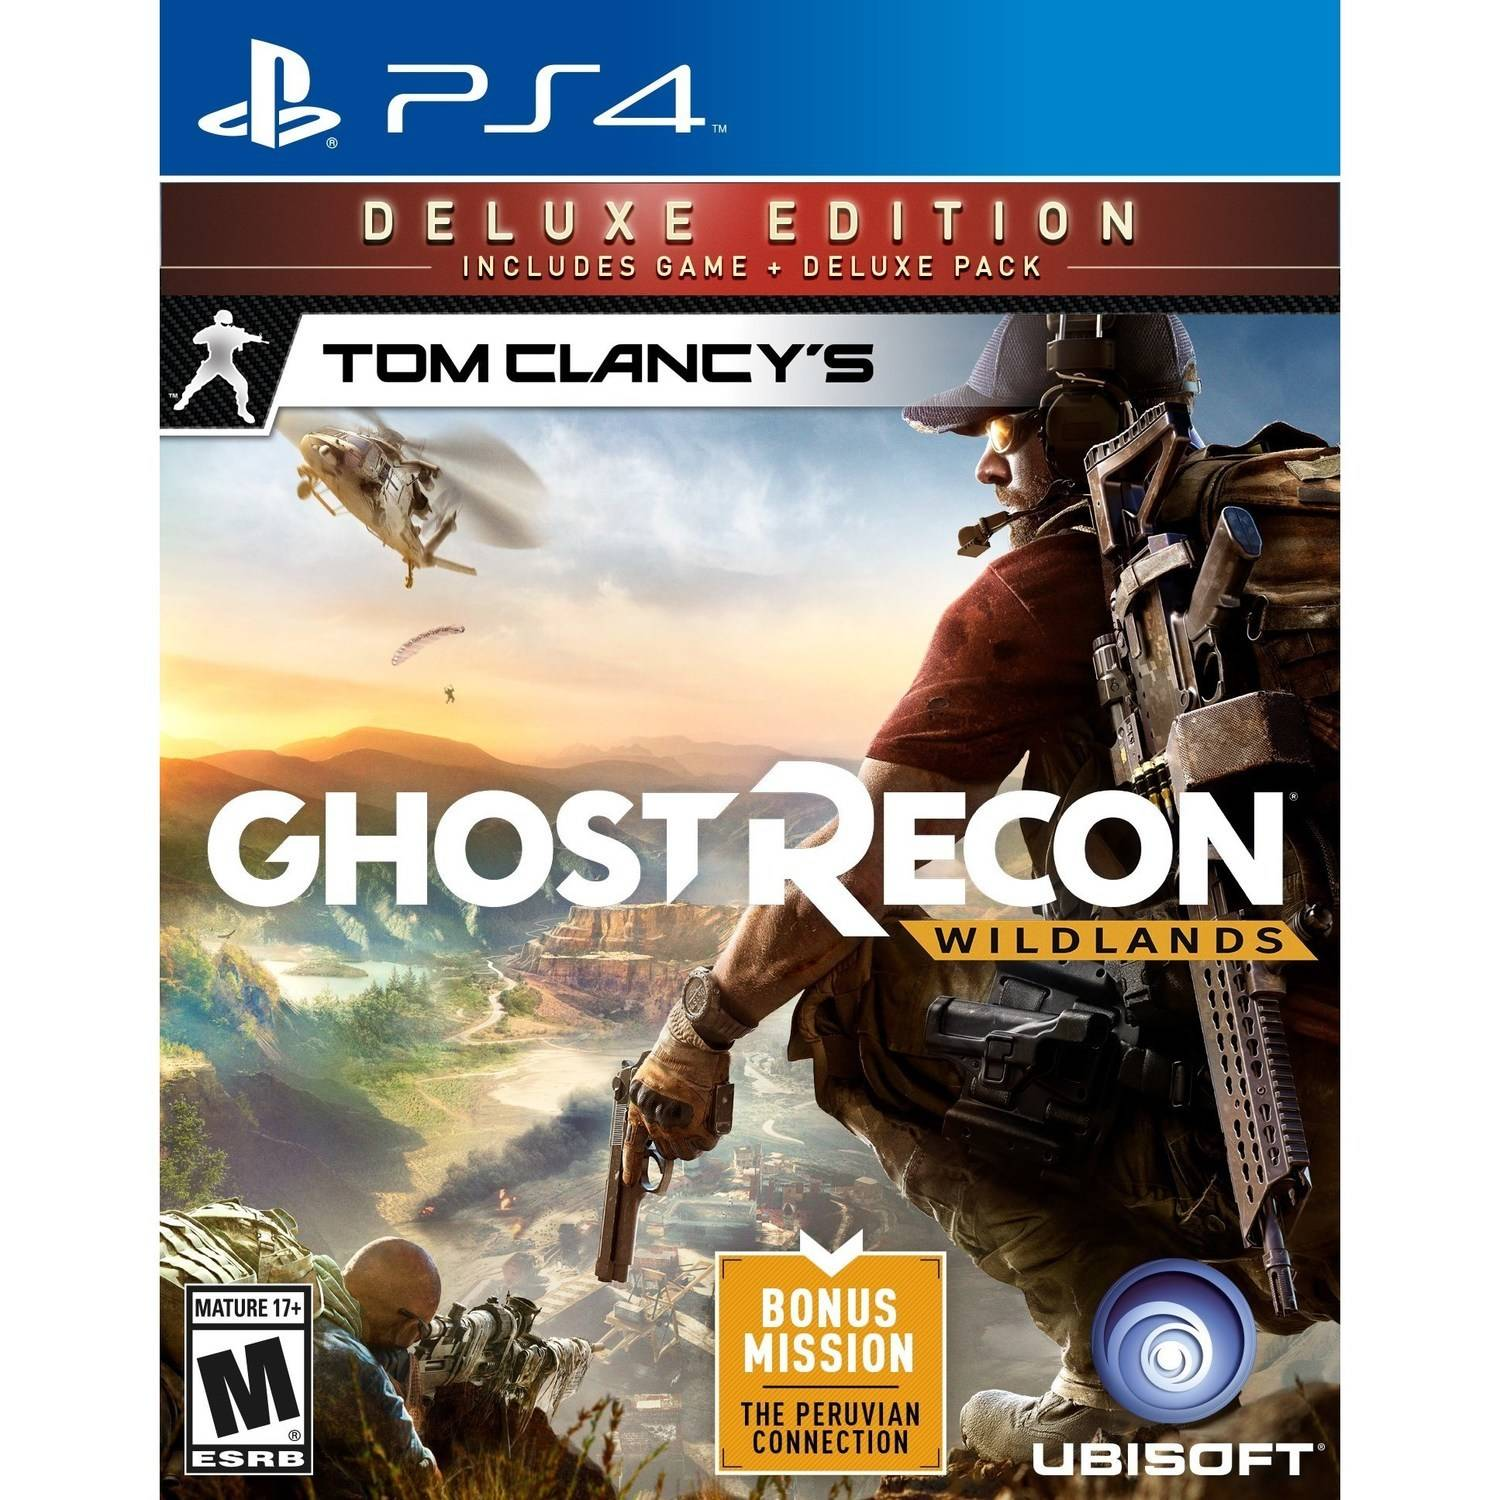 Tom Clancy's Ghost Recon Wildlands Deluxe Edition (Playstation 4) by Ubisoft